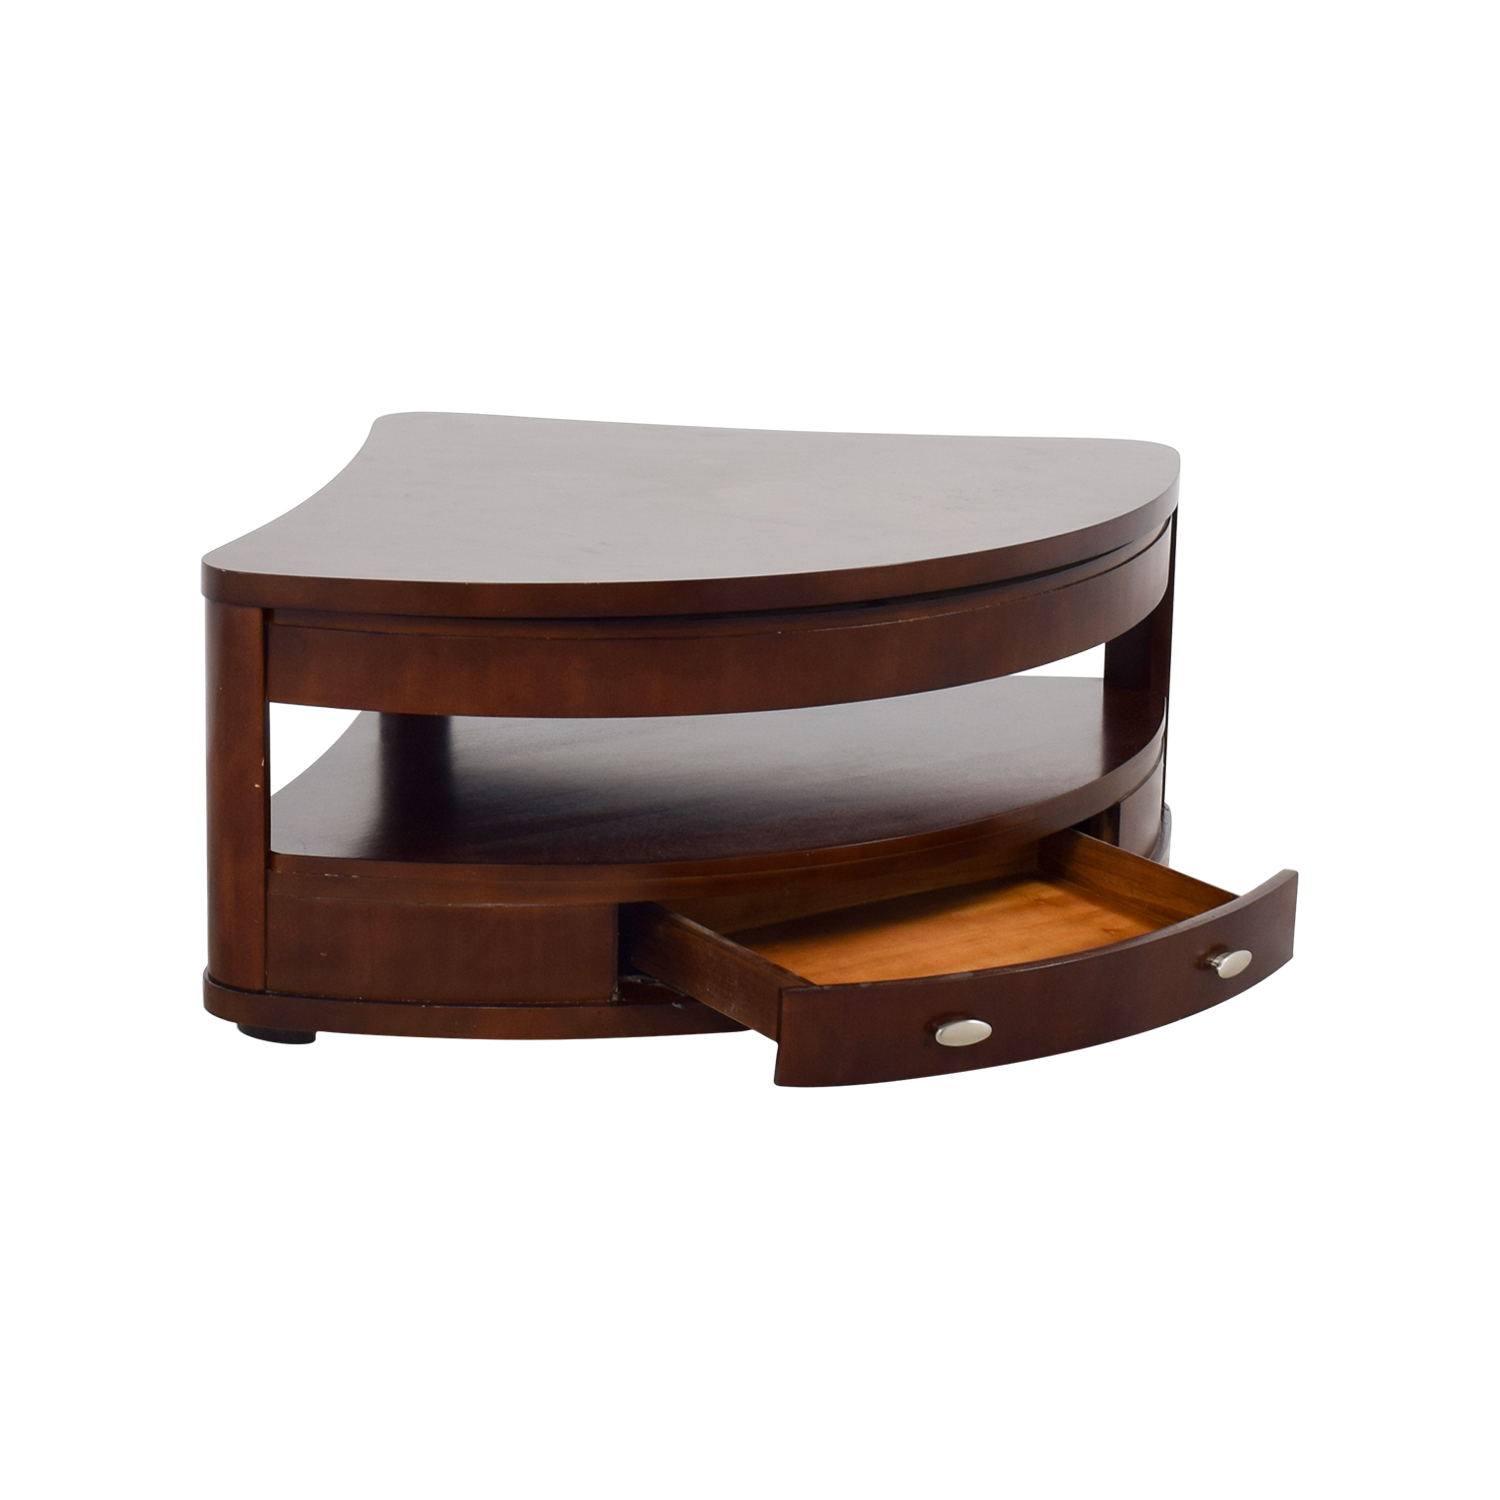 Lift Table Coffee Table: Triangular Rounded Lift-top Coffee Table / Tables